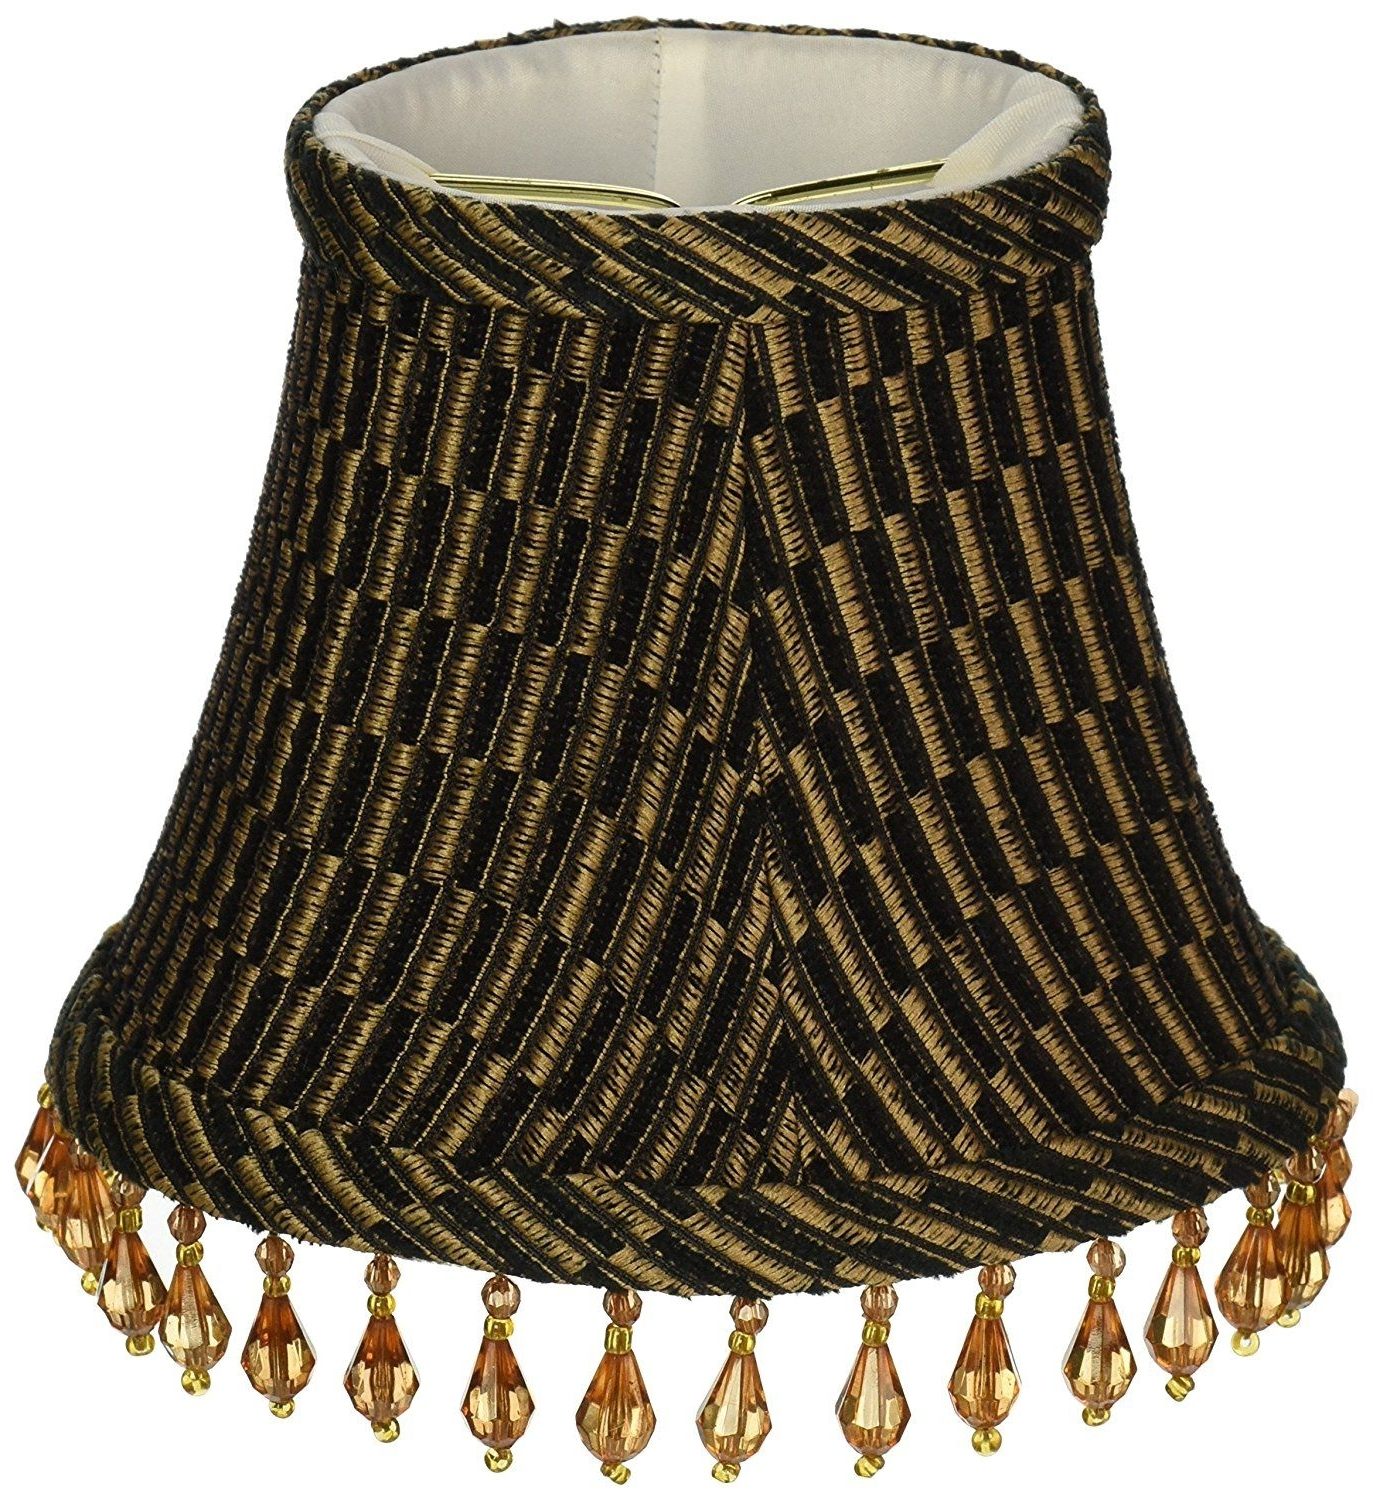 Well Known Lamp: Chandelier Lamp Shades Upgradelights Set Of 6 Barrel Shades 5 Regarding Chandelier Lamp Shades Clip On (View 19 of 20)